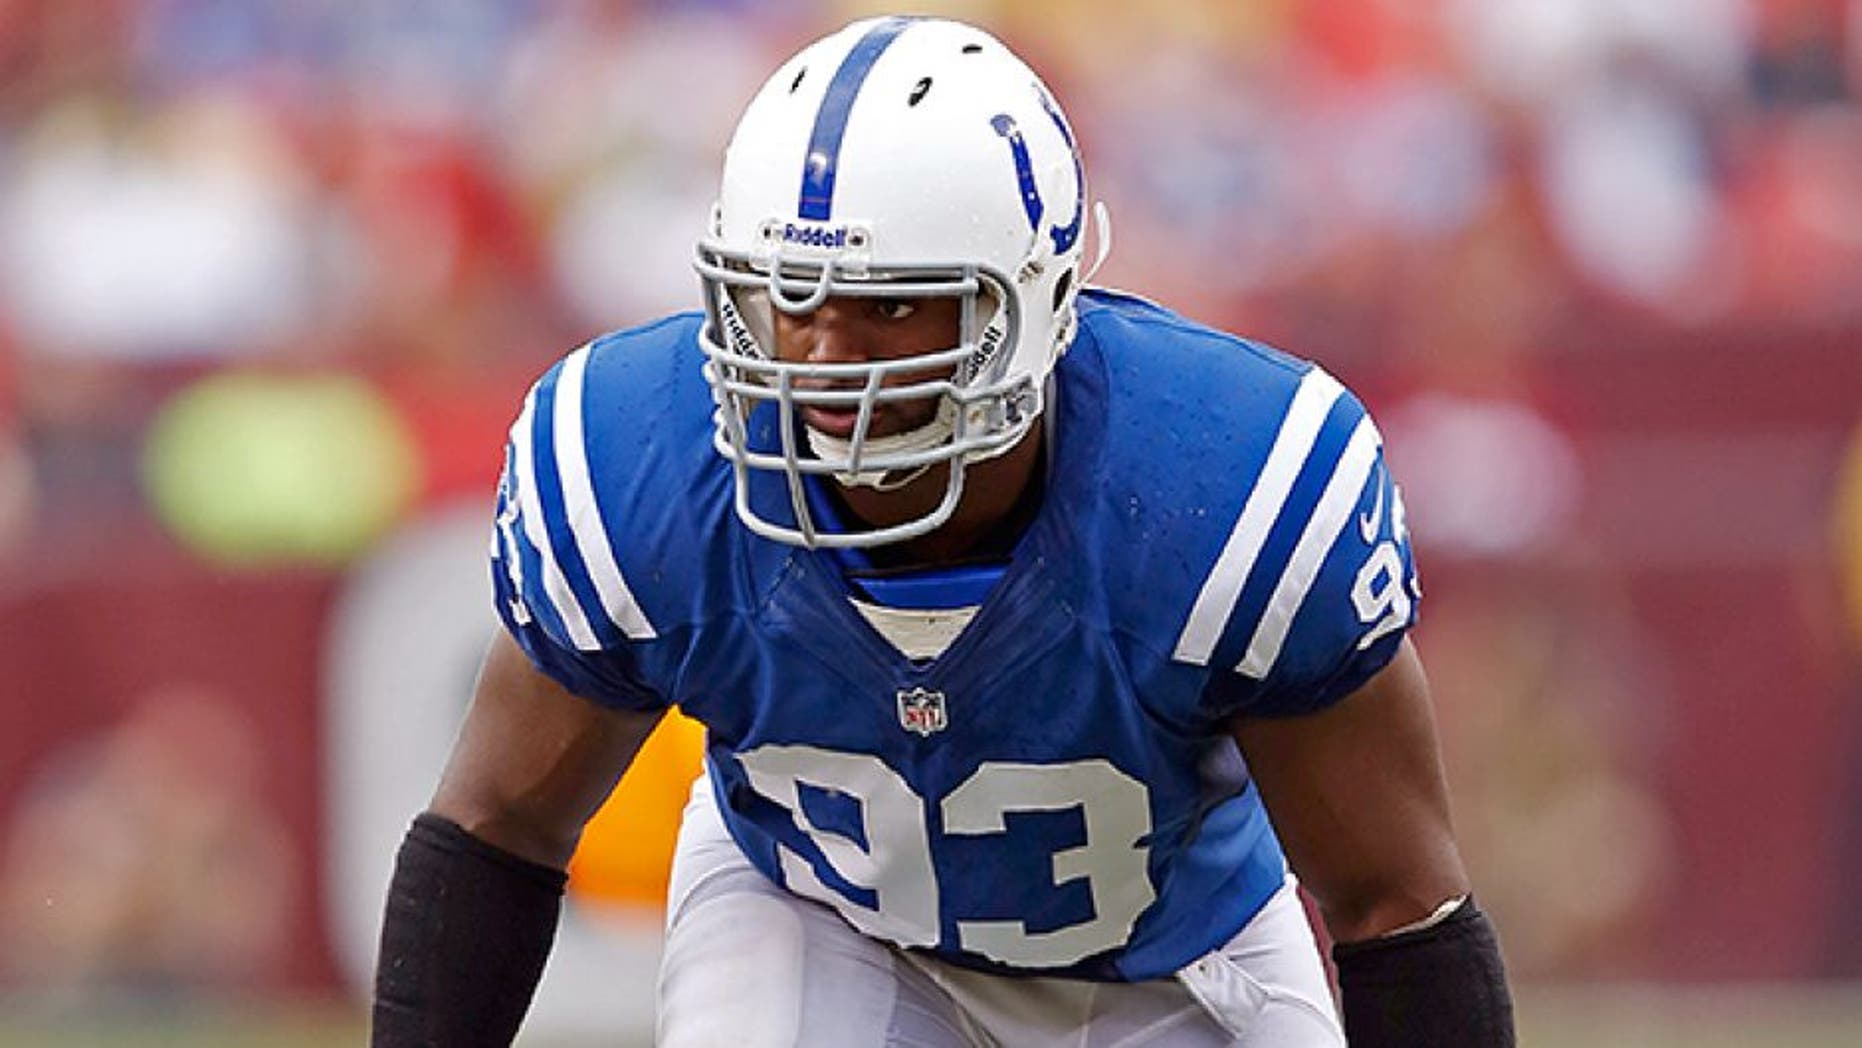 LANDOVER, MD - AUGUST 25: Dwight Freeney #93 of the Indianapolis Colts lines up against the Washington Redskins during a preseason NFL game at FedEx Field on August 25, 2012 in Landover, Maryland. The Redskins beat the Colts 30-17. (Photo by Joe Robbins/Getty Images)